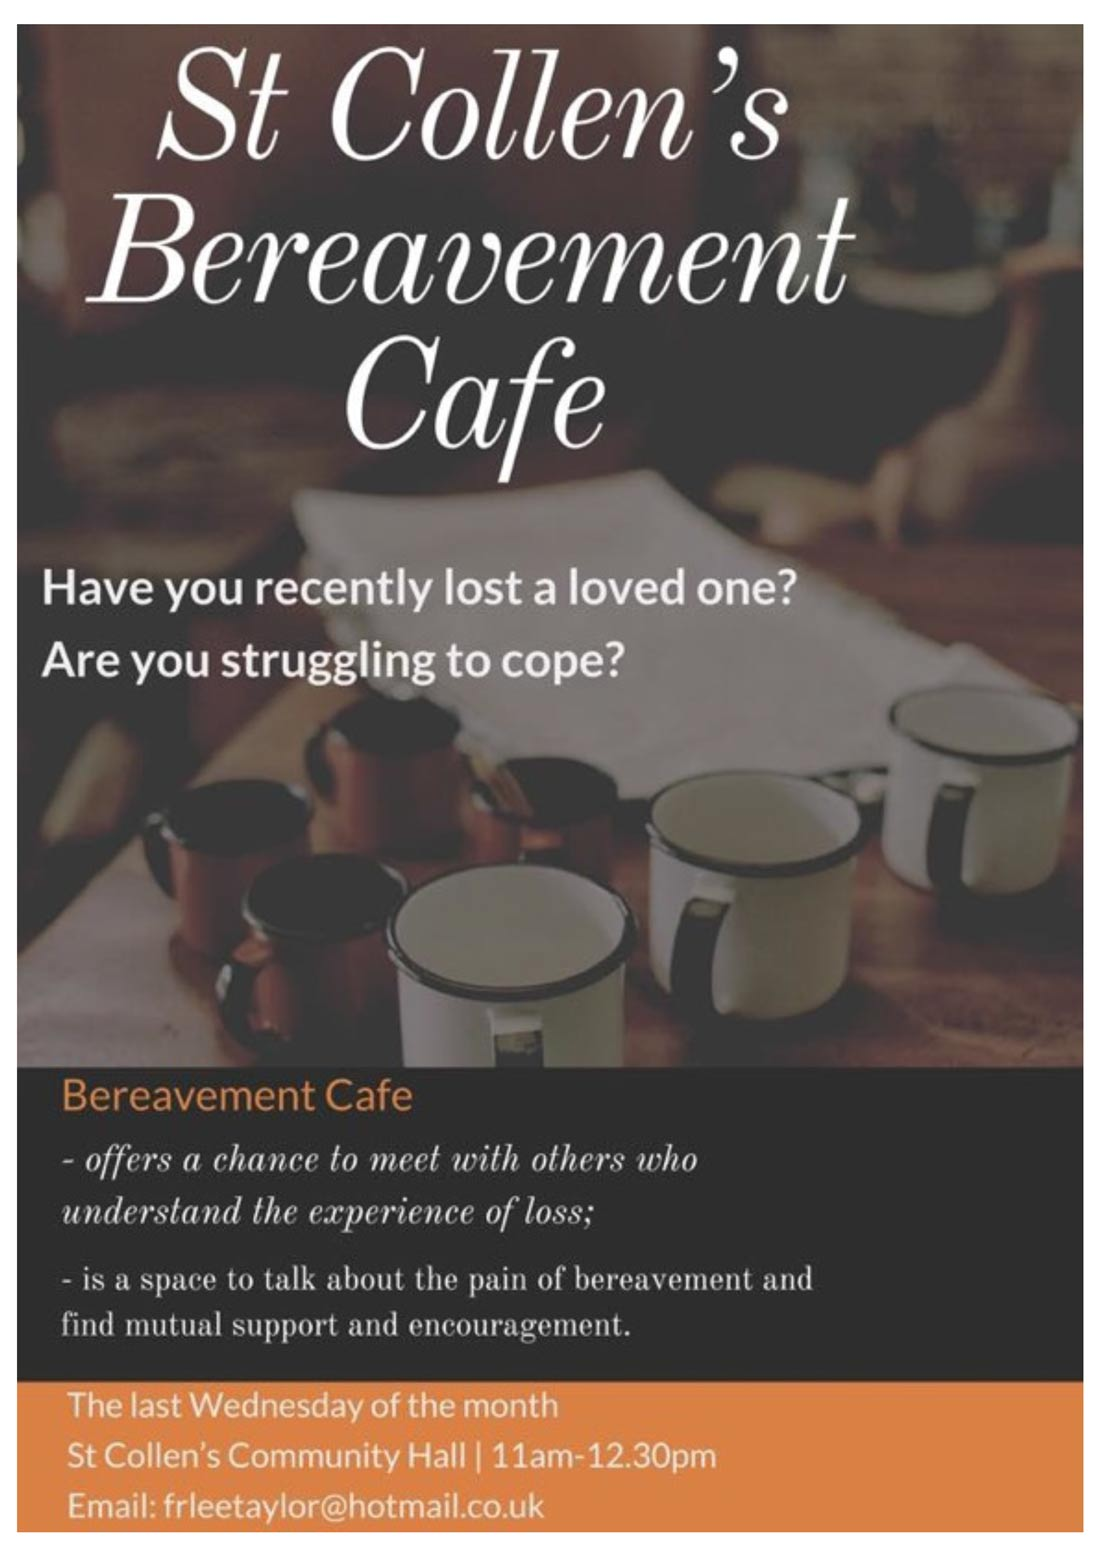 St Collen's Bereavement Cafe